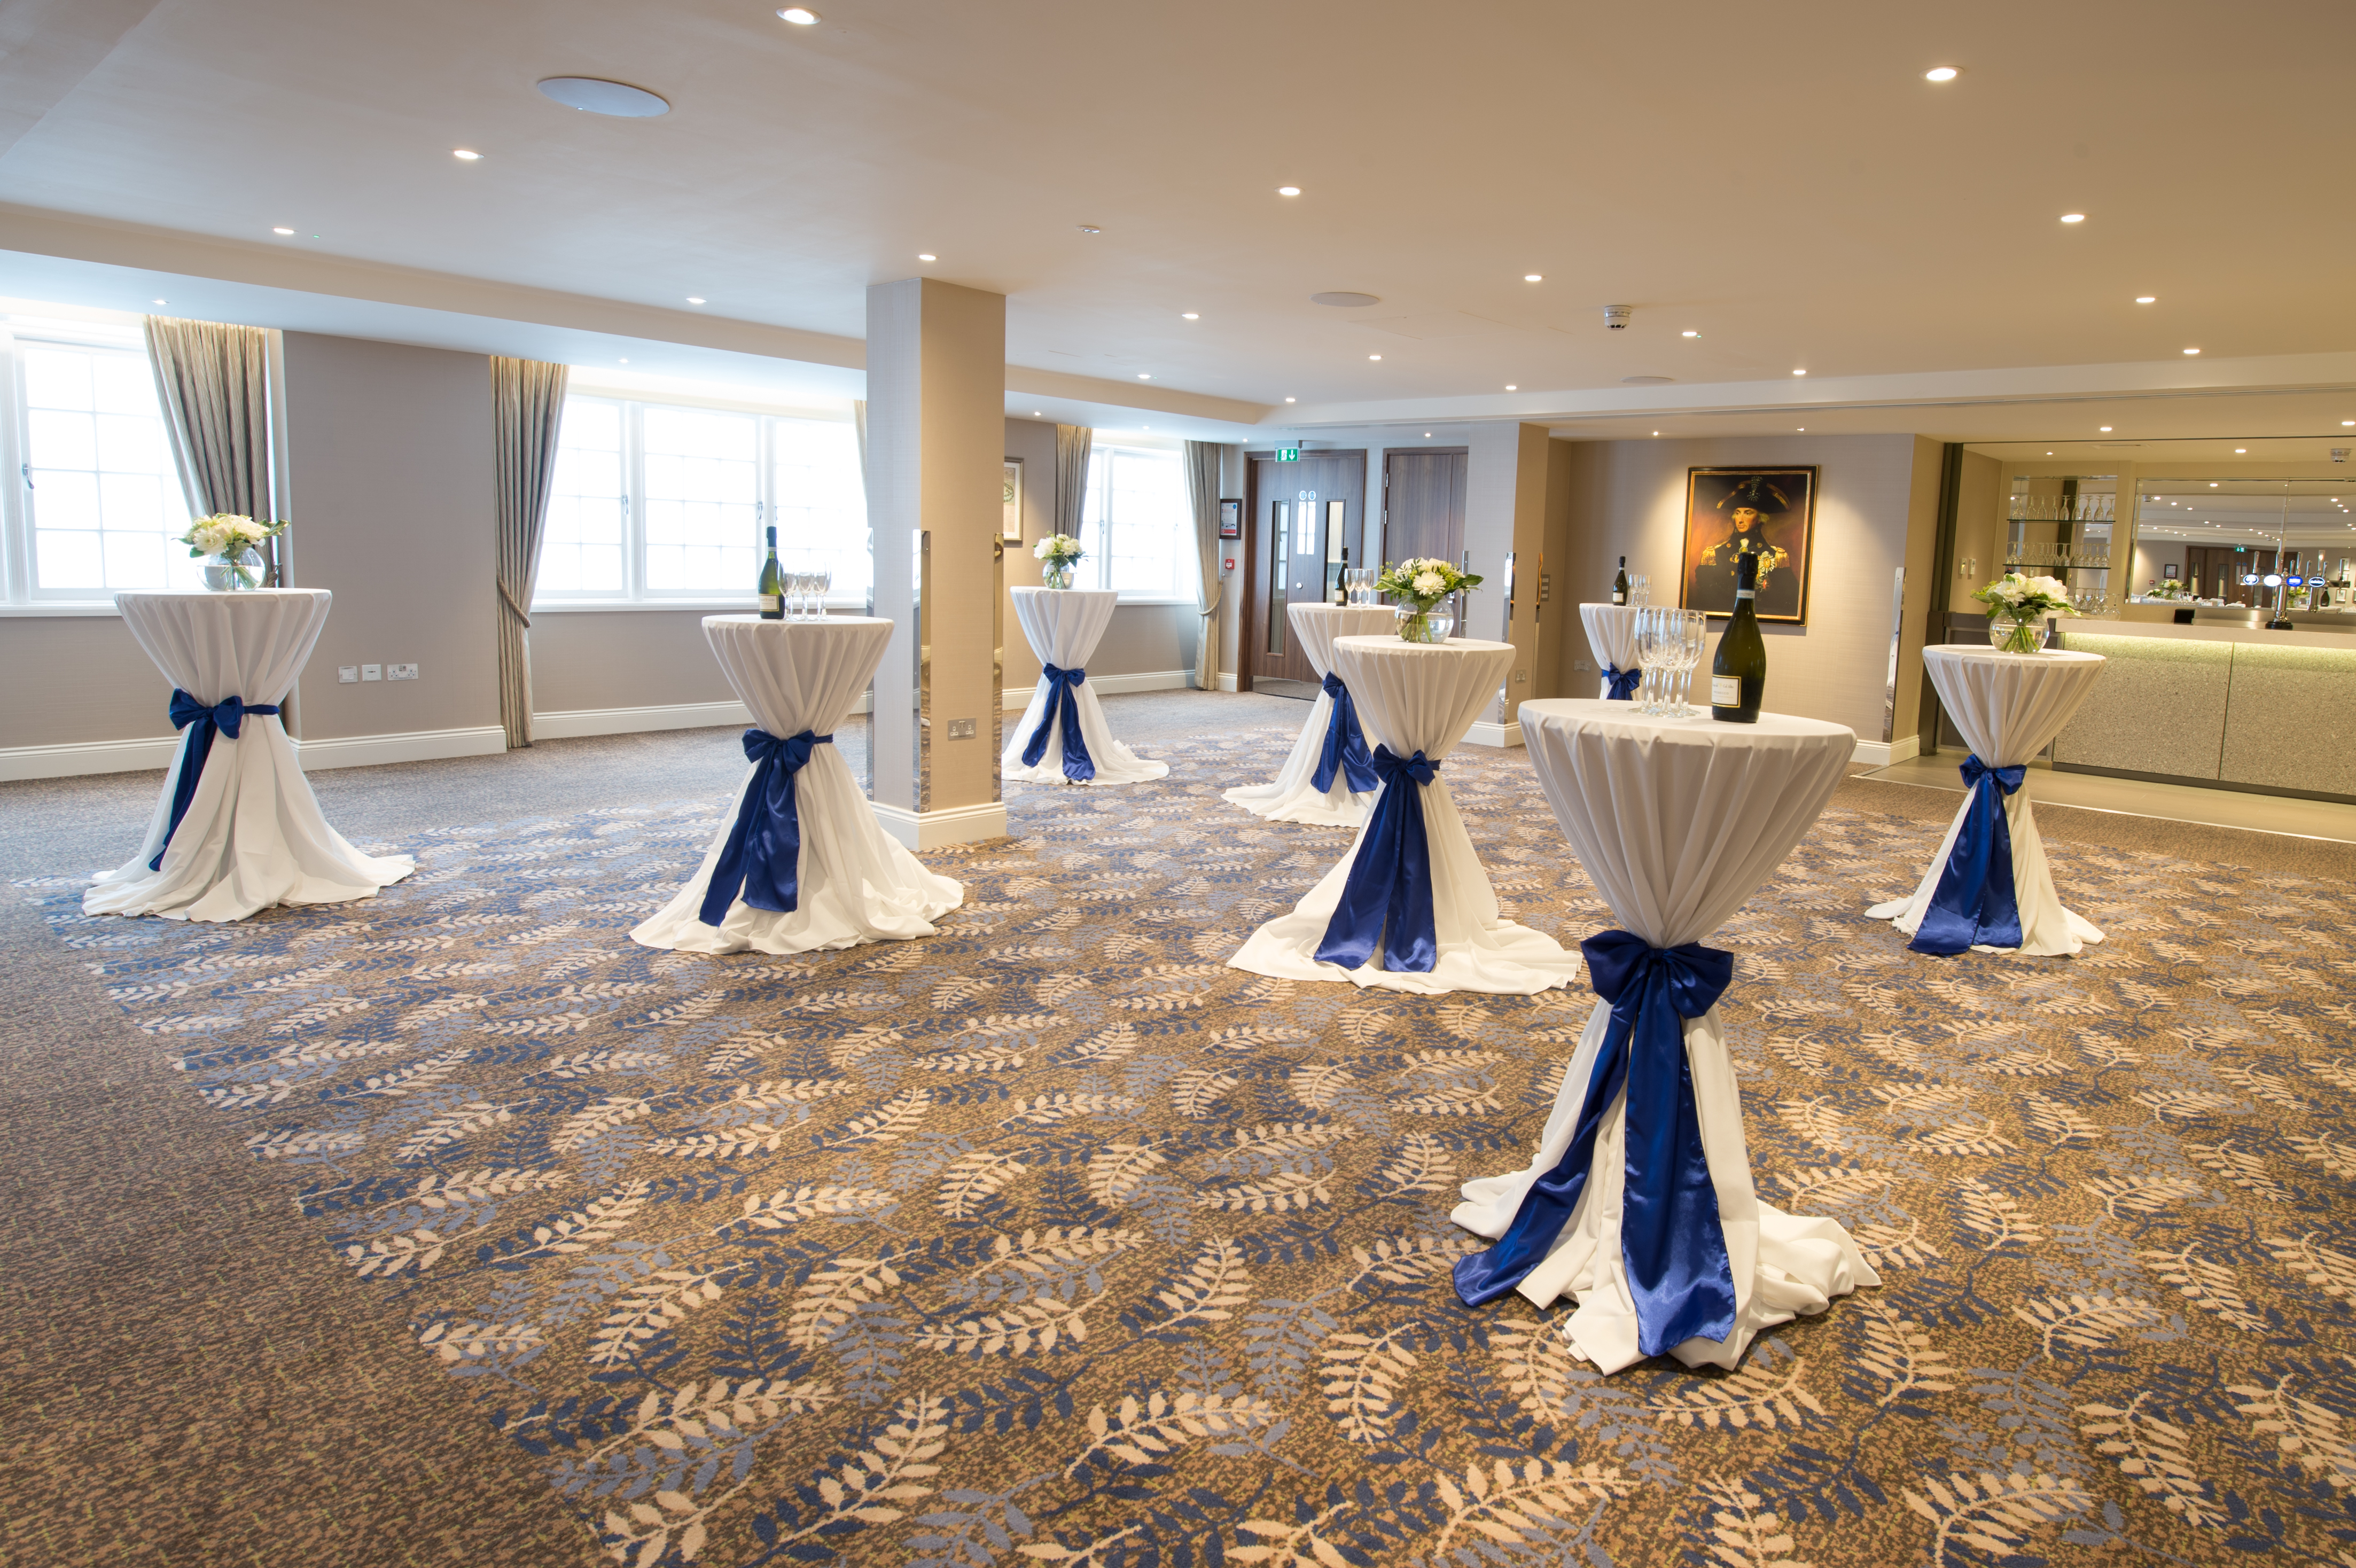 Trafalgar Room Victory Services Club Event Venue Hire